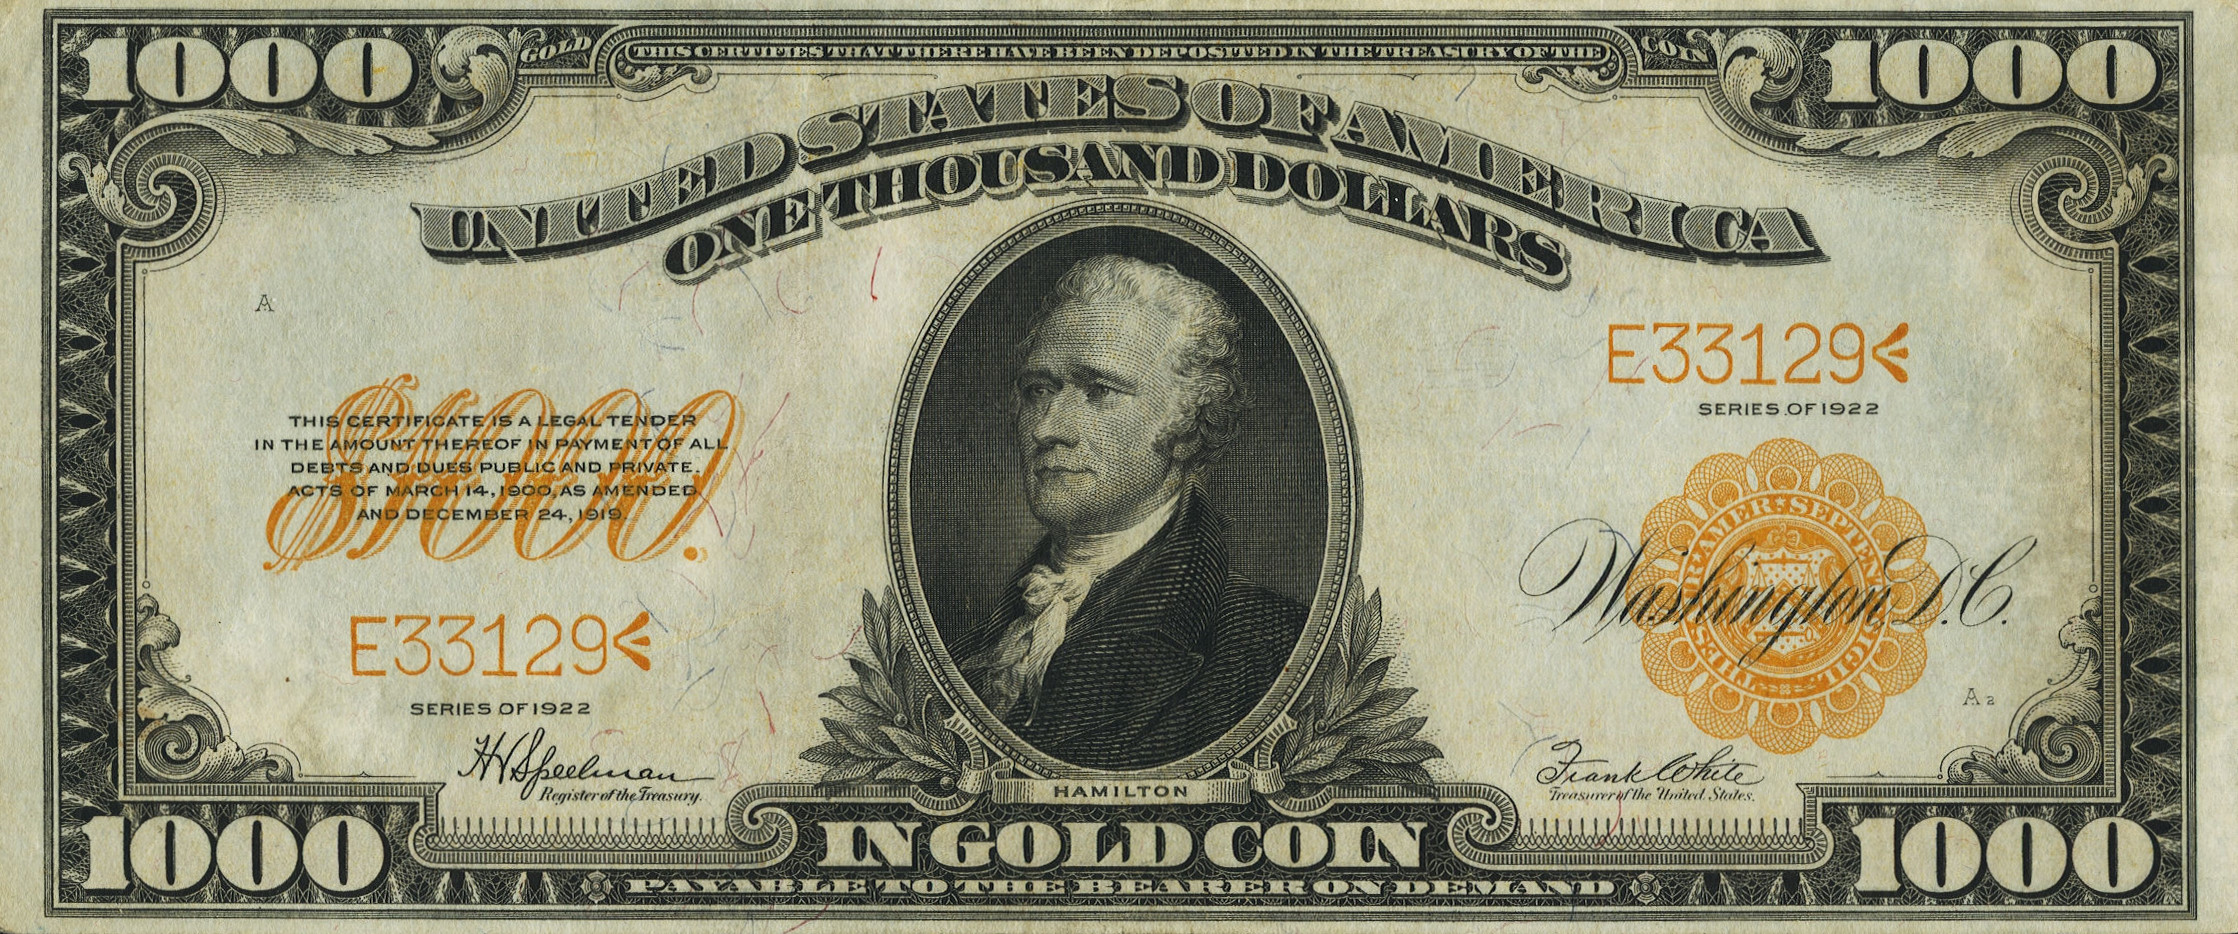 Gold Certificates and Bank Notes For Sale - donckelly.com